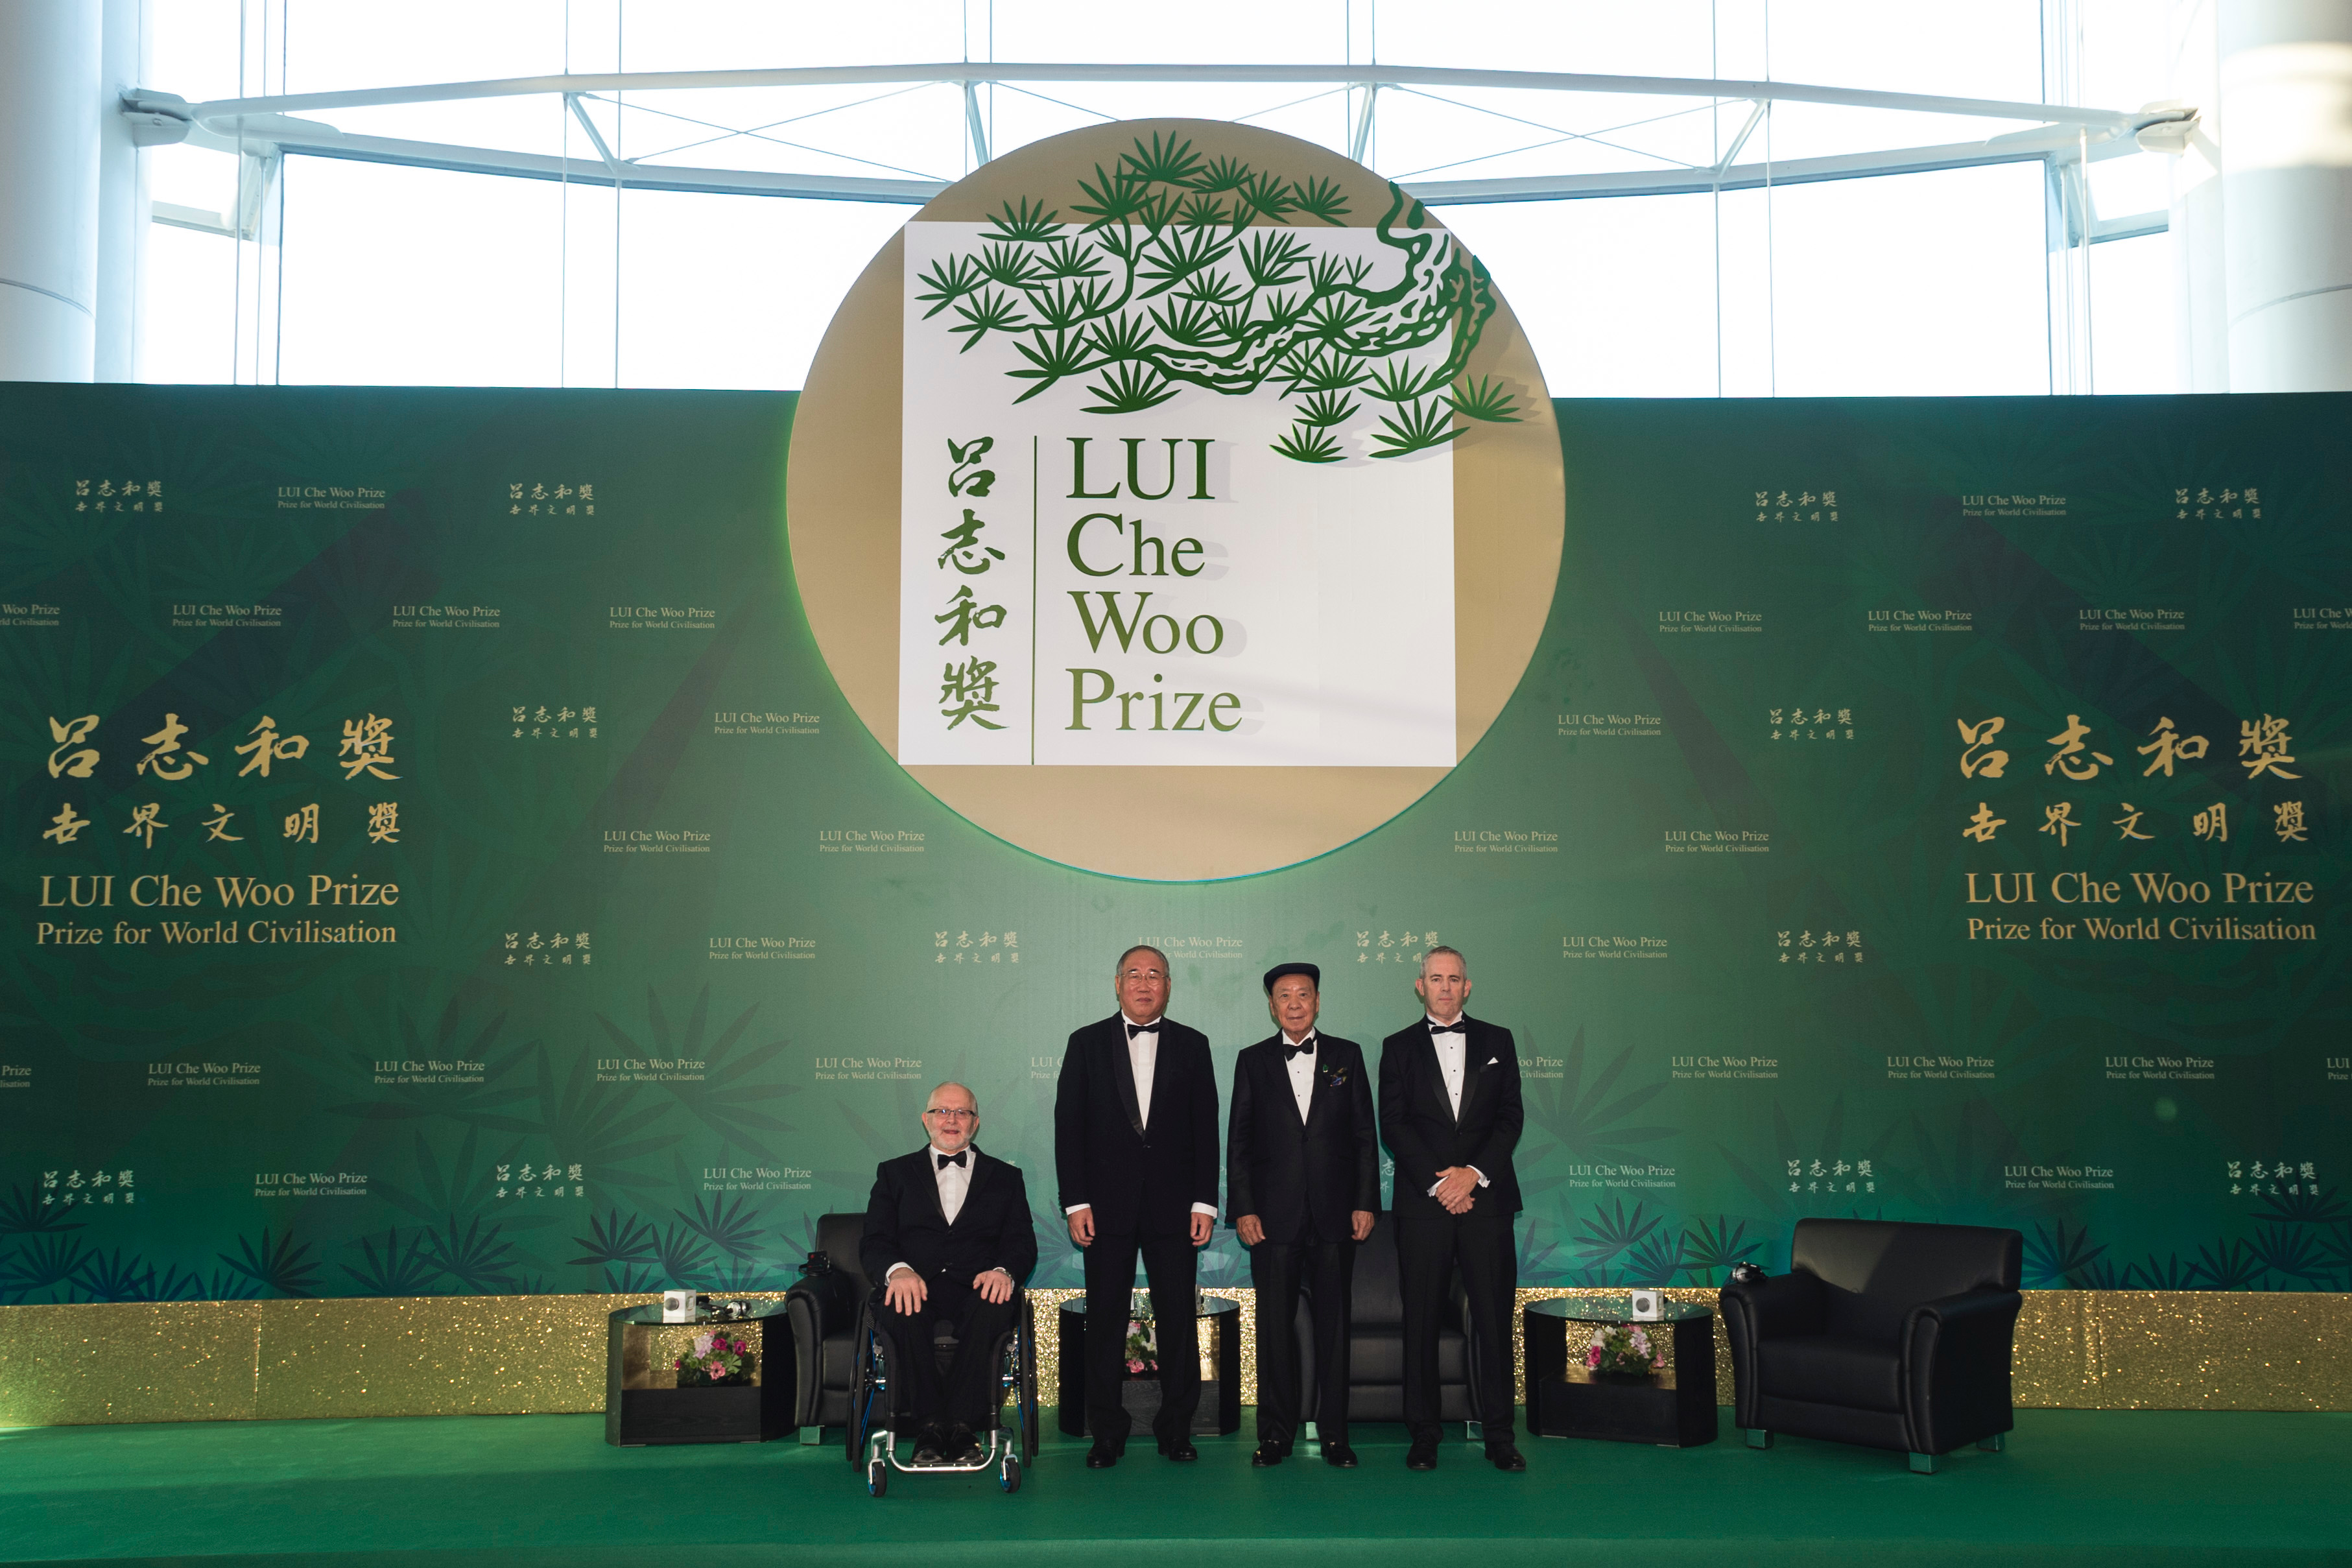 【Press Release】LUI Che Woo Prize – Prize for World Civilisation Prize Presentation Ceremony 2017